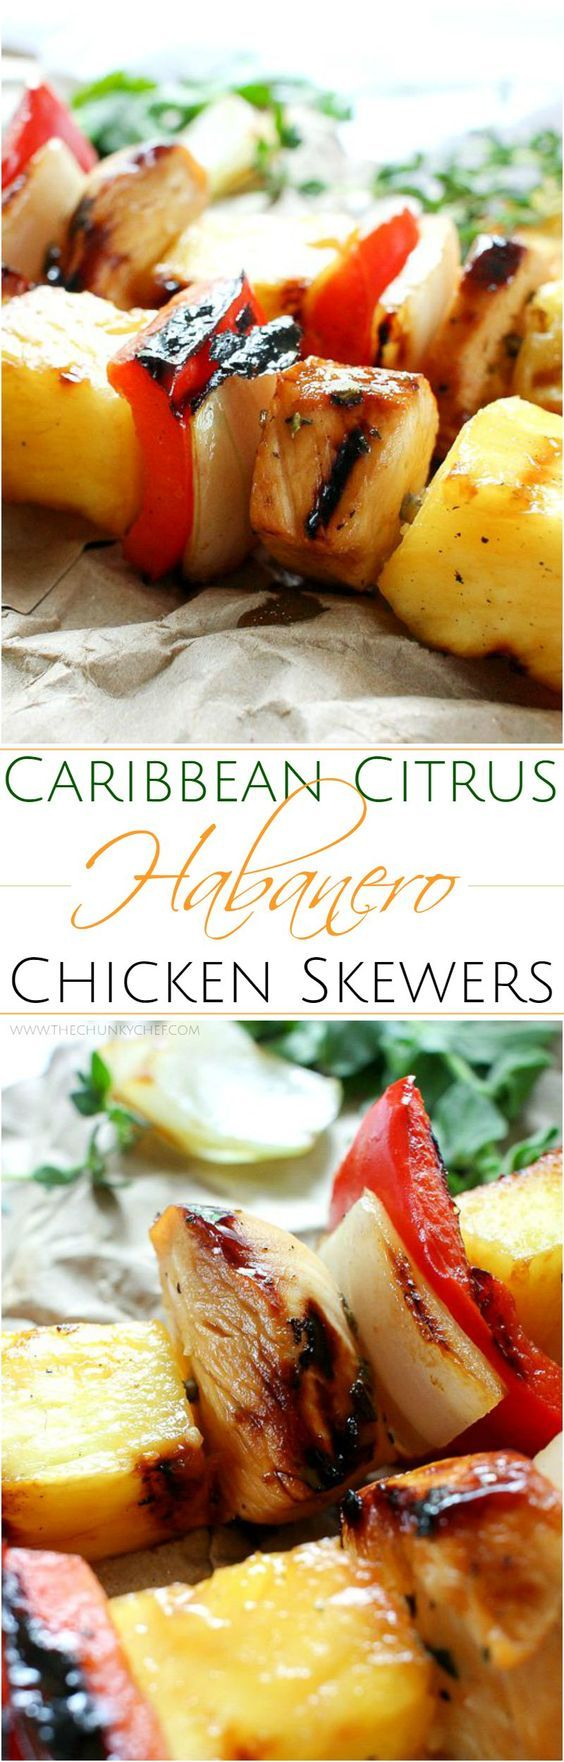 Taste the Caribbean in these citrus habanero chicken skewers... marinated chicken onions peppers and pineapple.. all grilled to smoky charred perfection!